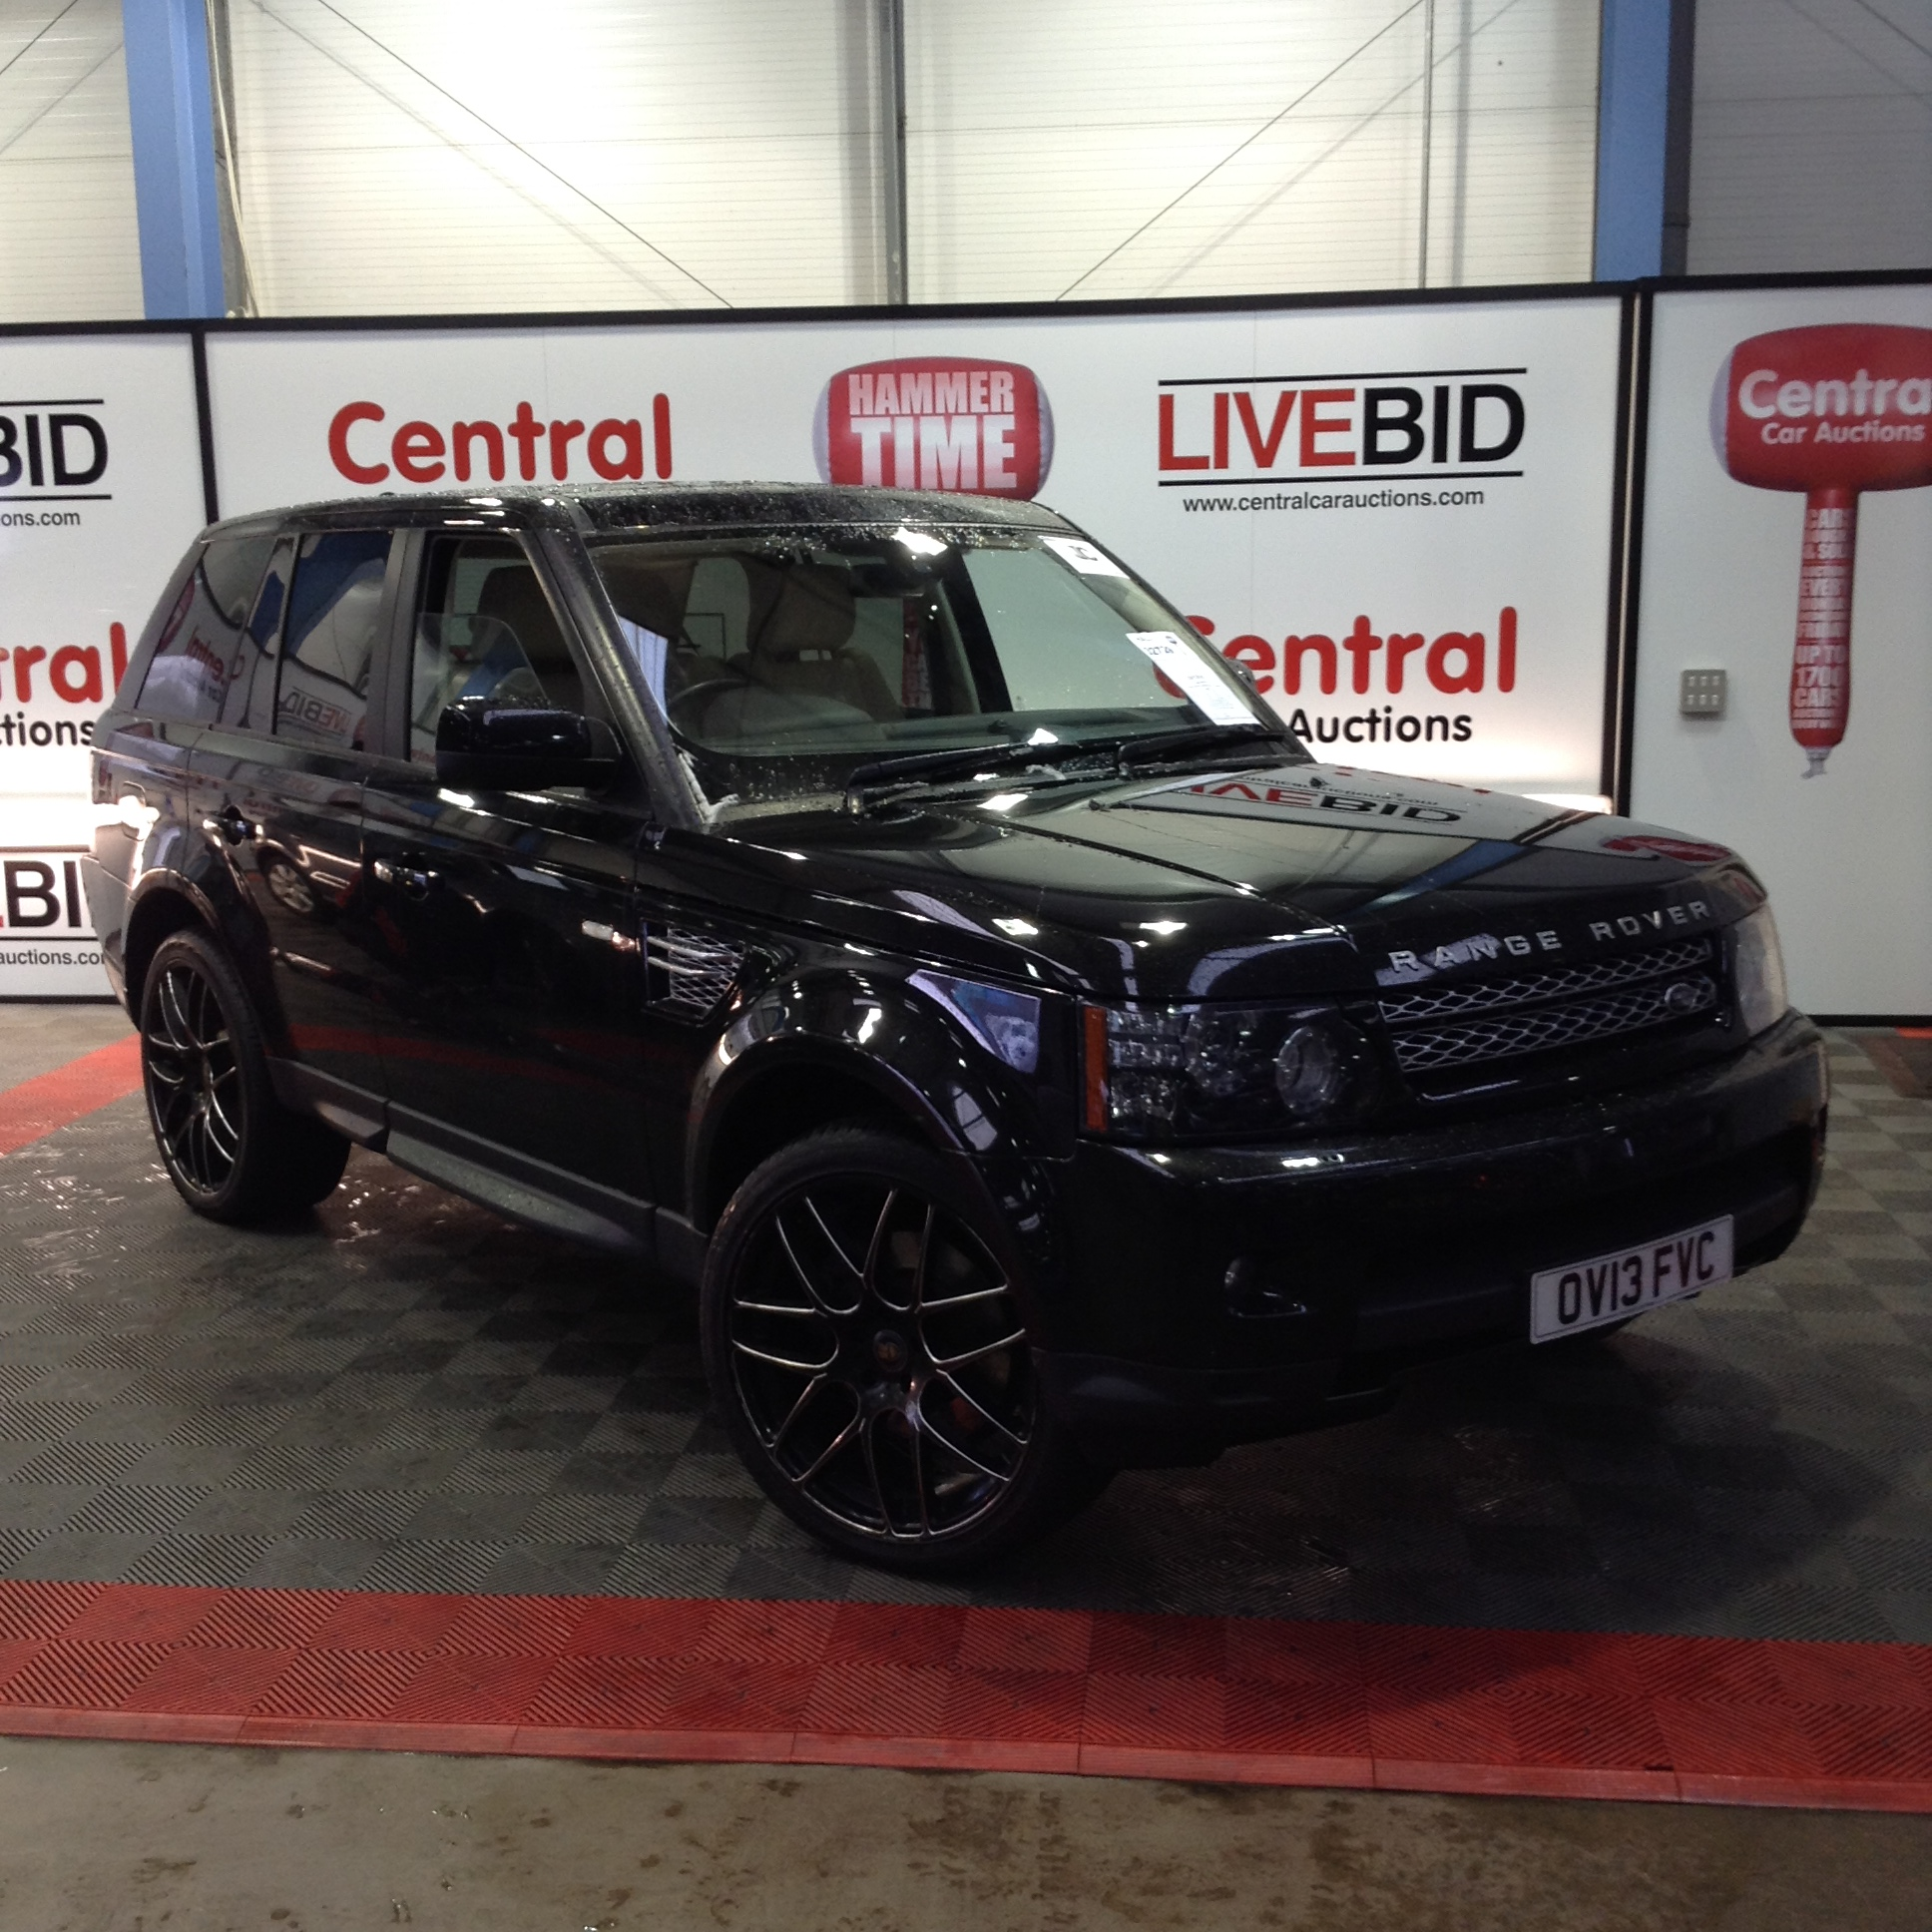 Find More 2009 Range Rover Sport Hse Automatic For Sale At: 2013 13 Plate Range Rover Sport HSE Black... • Central Car